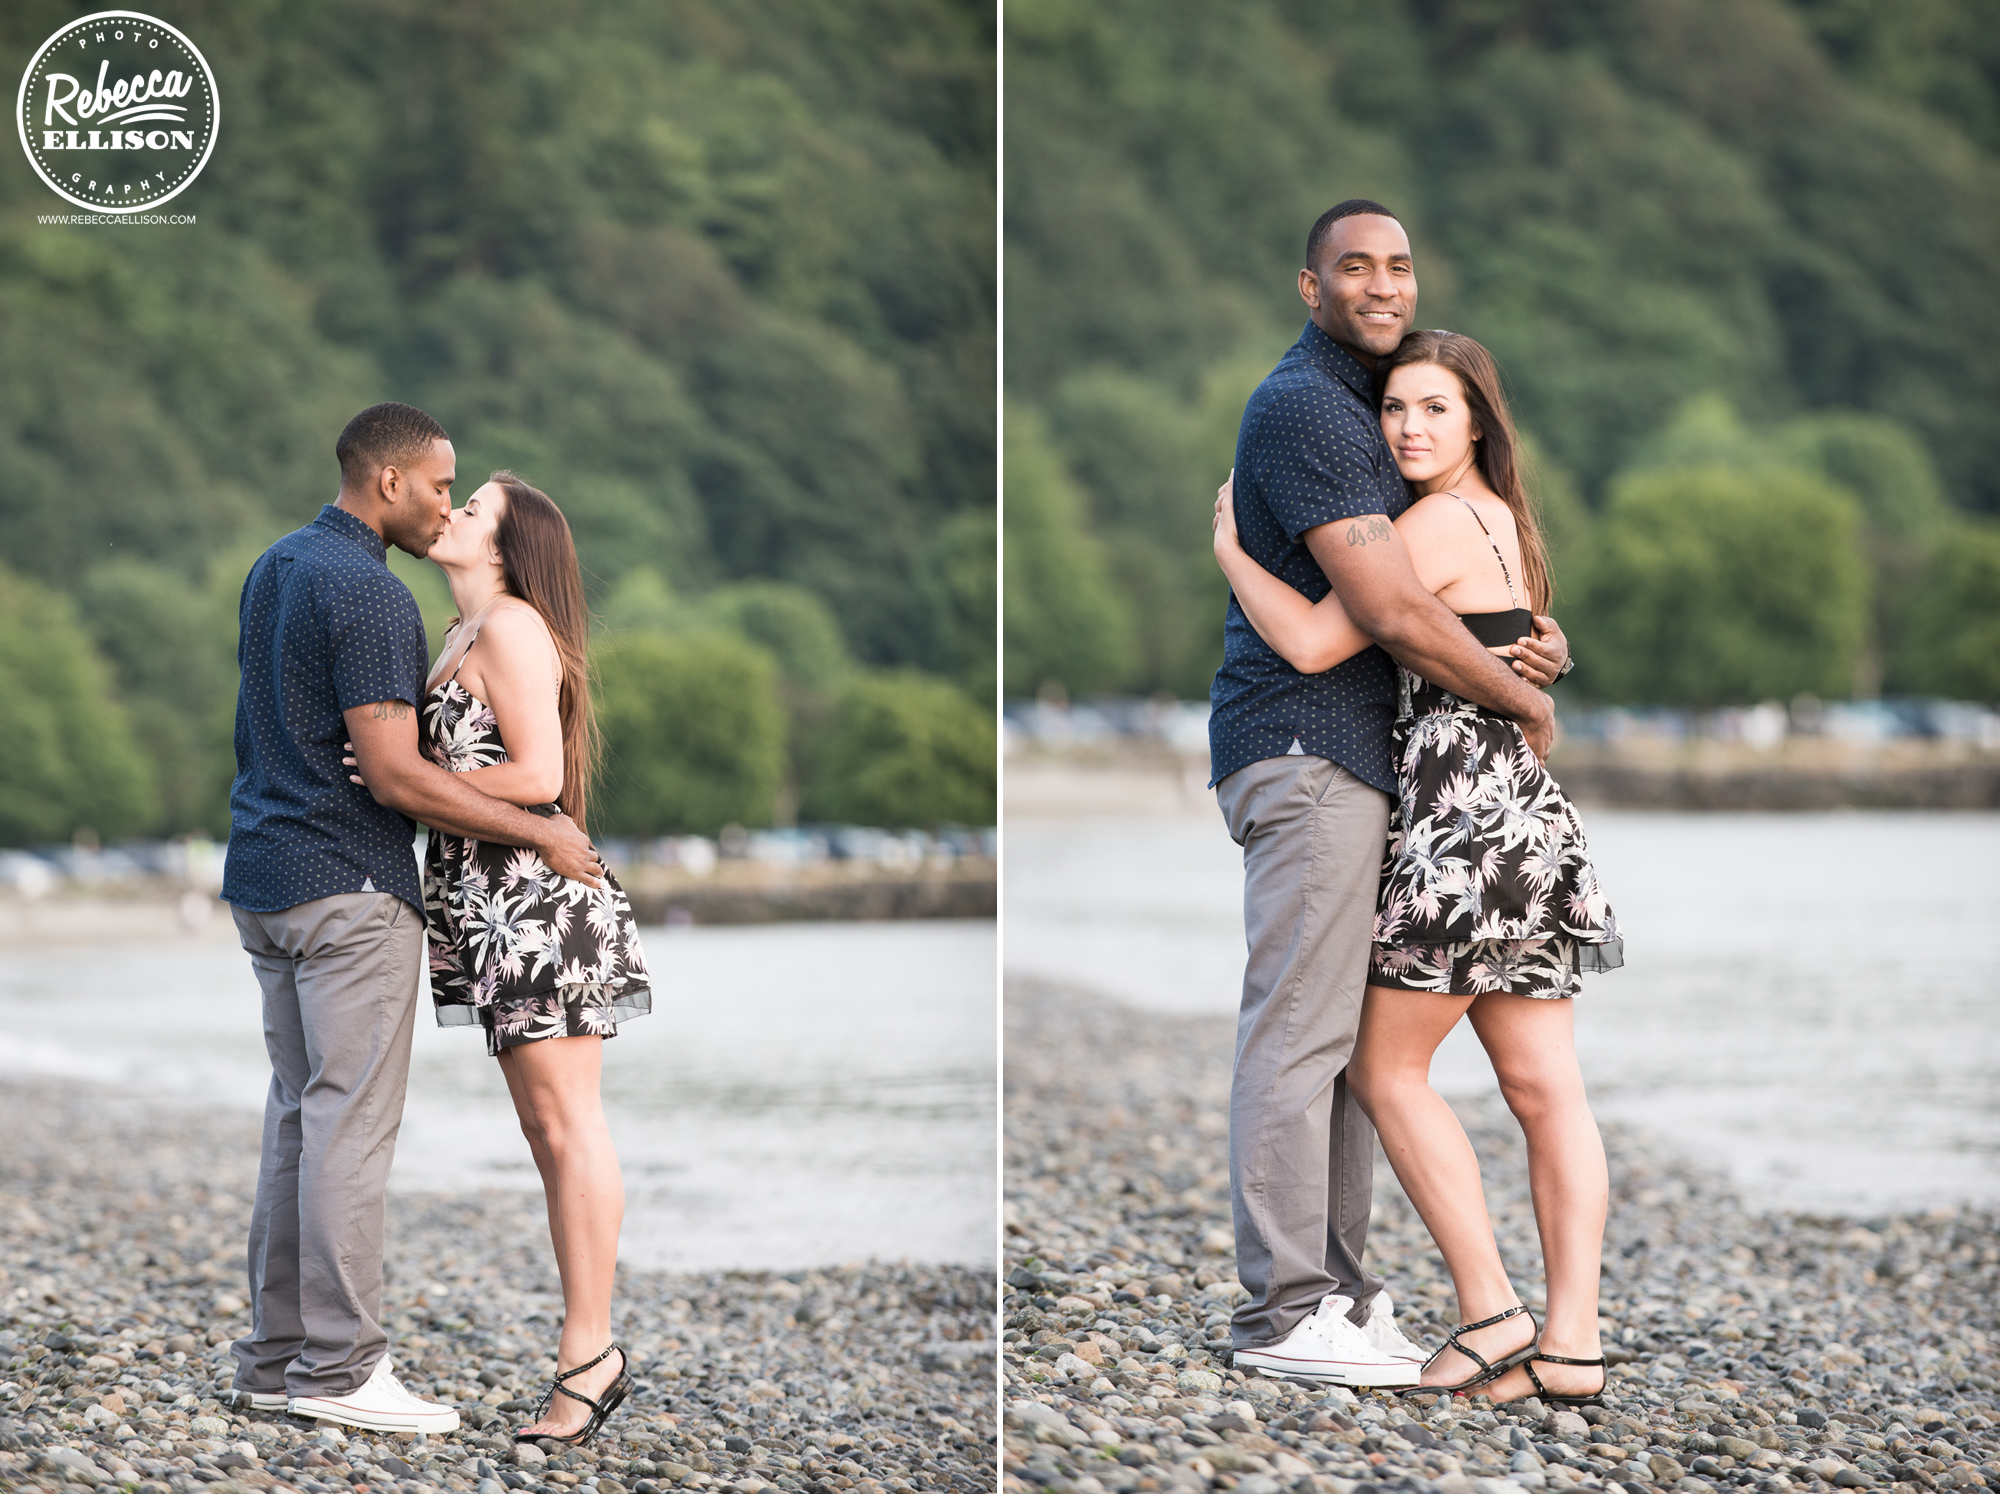 Beach Engagement at Golden Gardens in Seattle photographed by Rebecca Ellison Photography